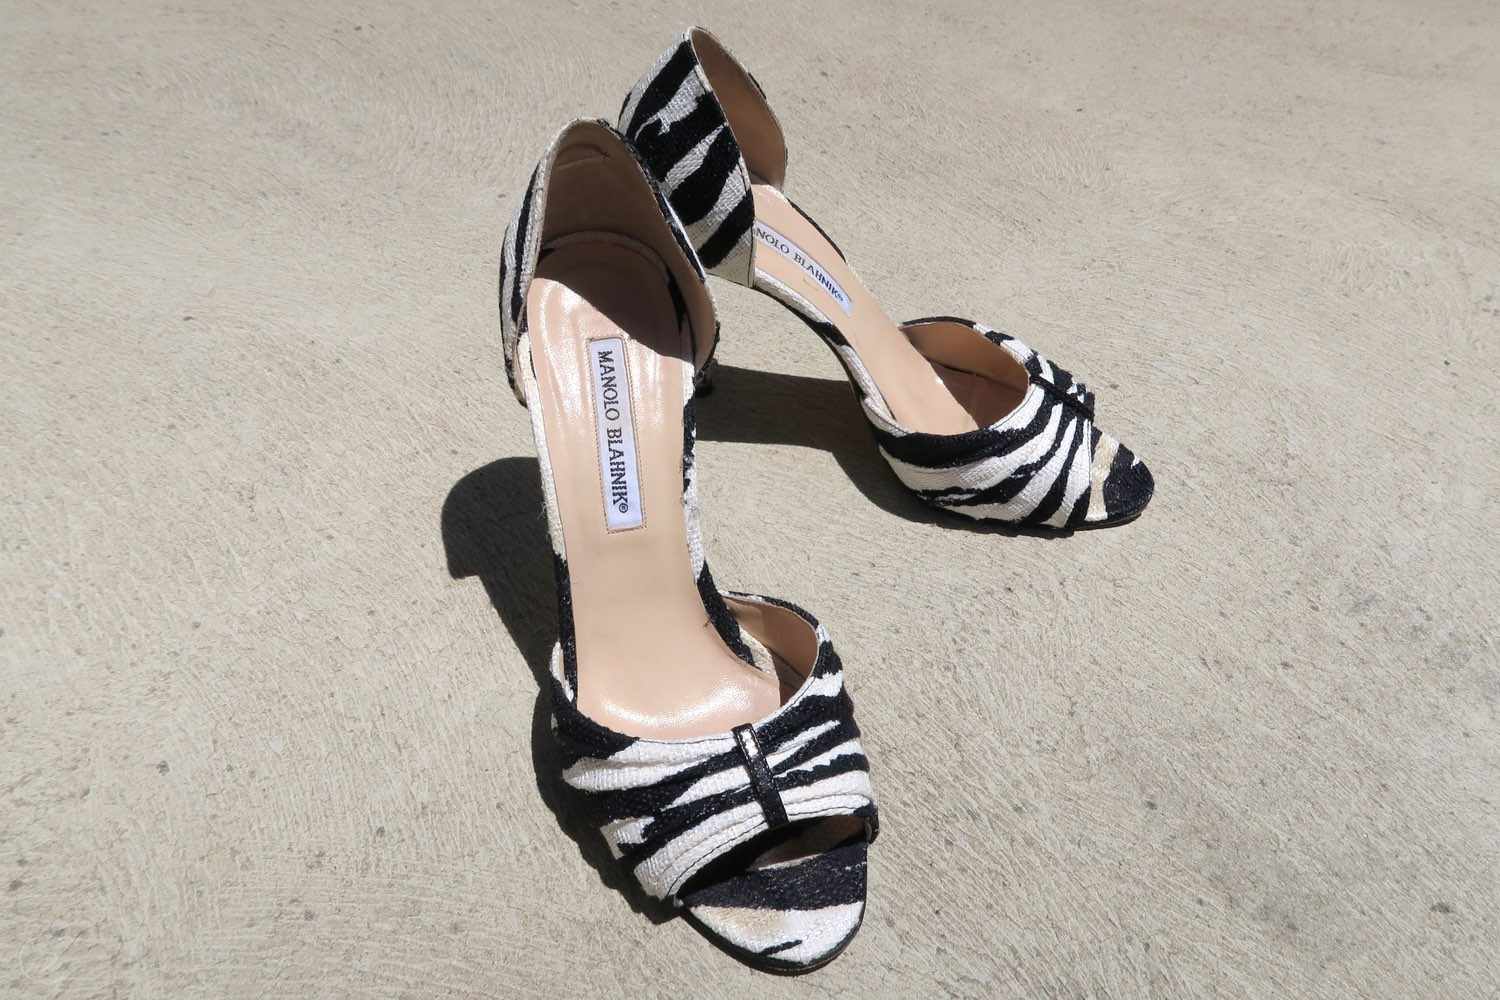 Zebra Black and White Manolo's from Sex and The City